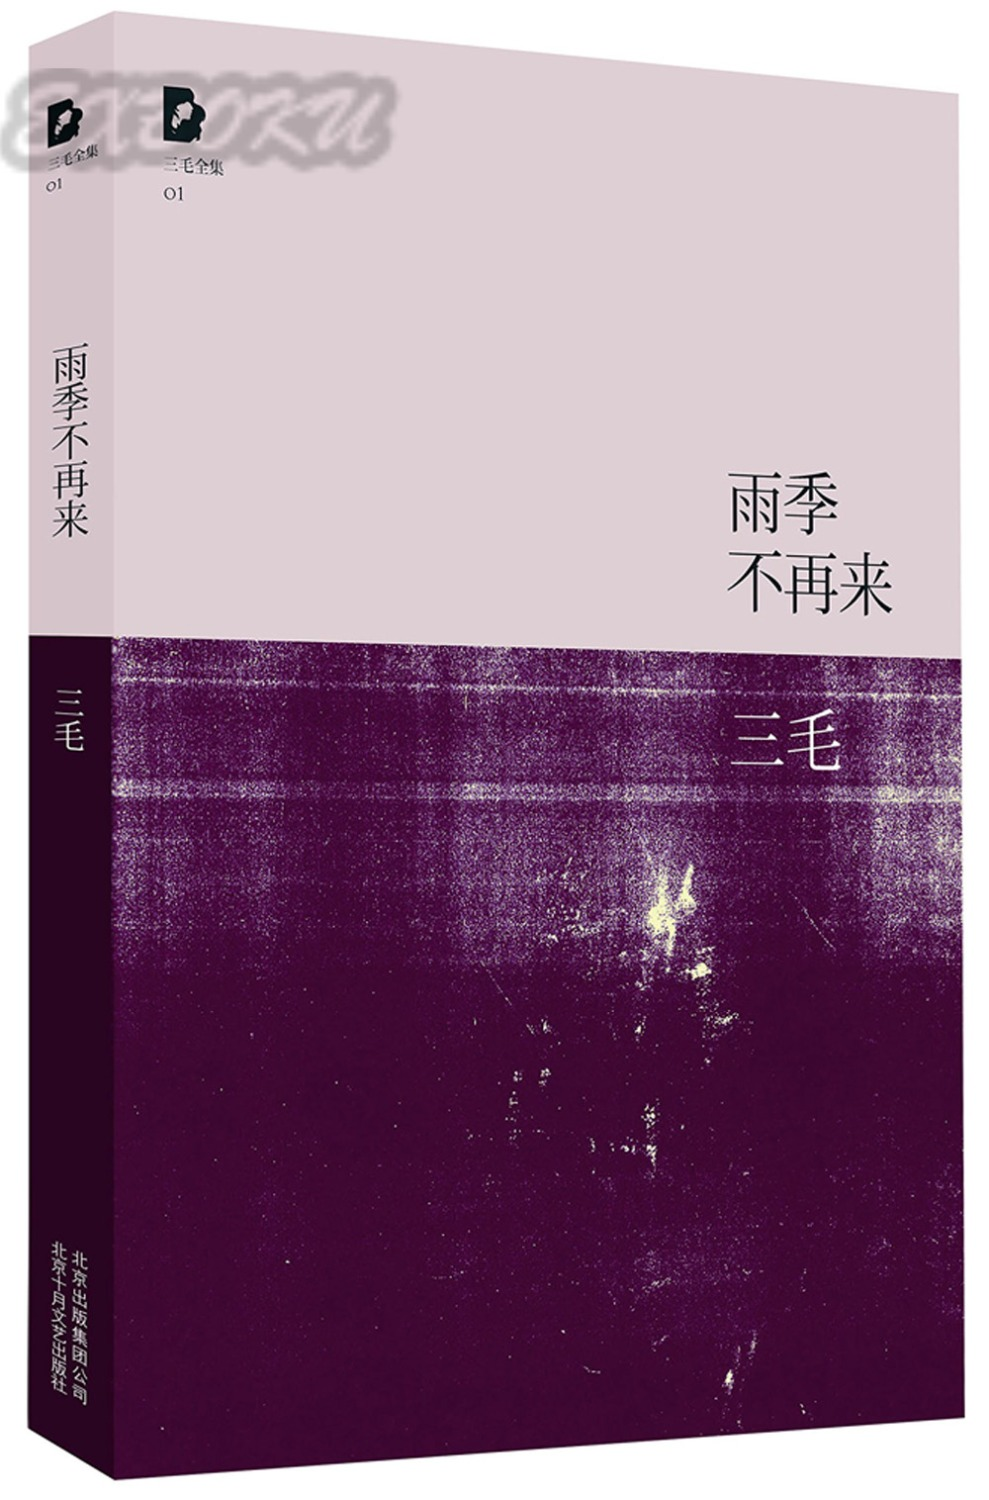 The rainy season is no longer to her written by san mao / chinese famous story fiction book цены онлайн